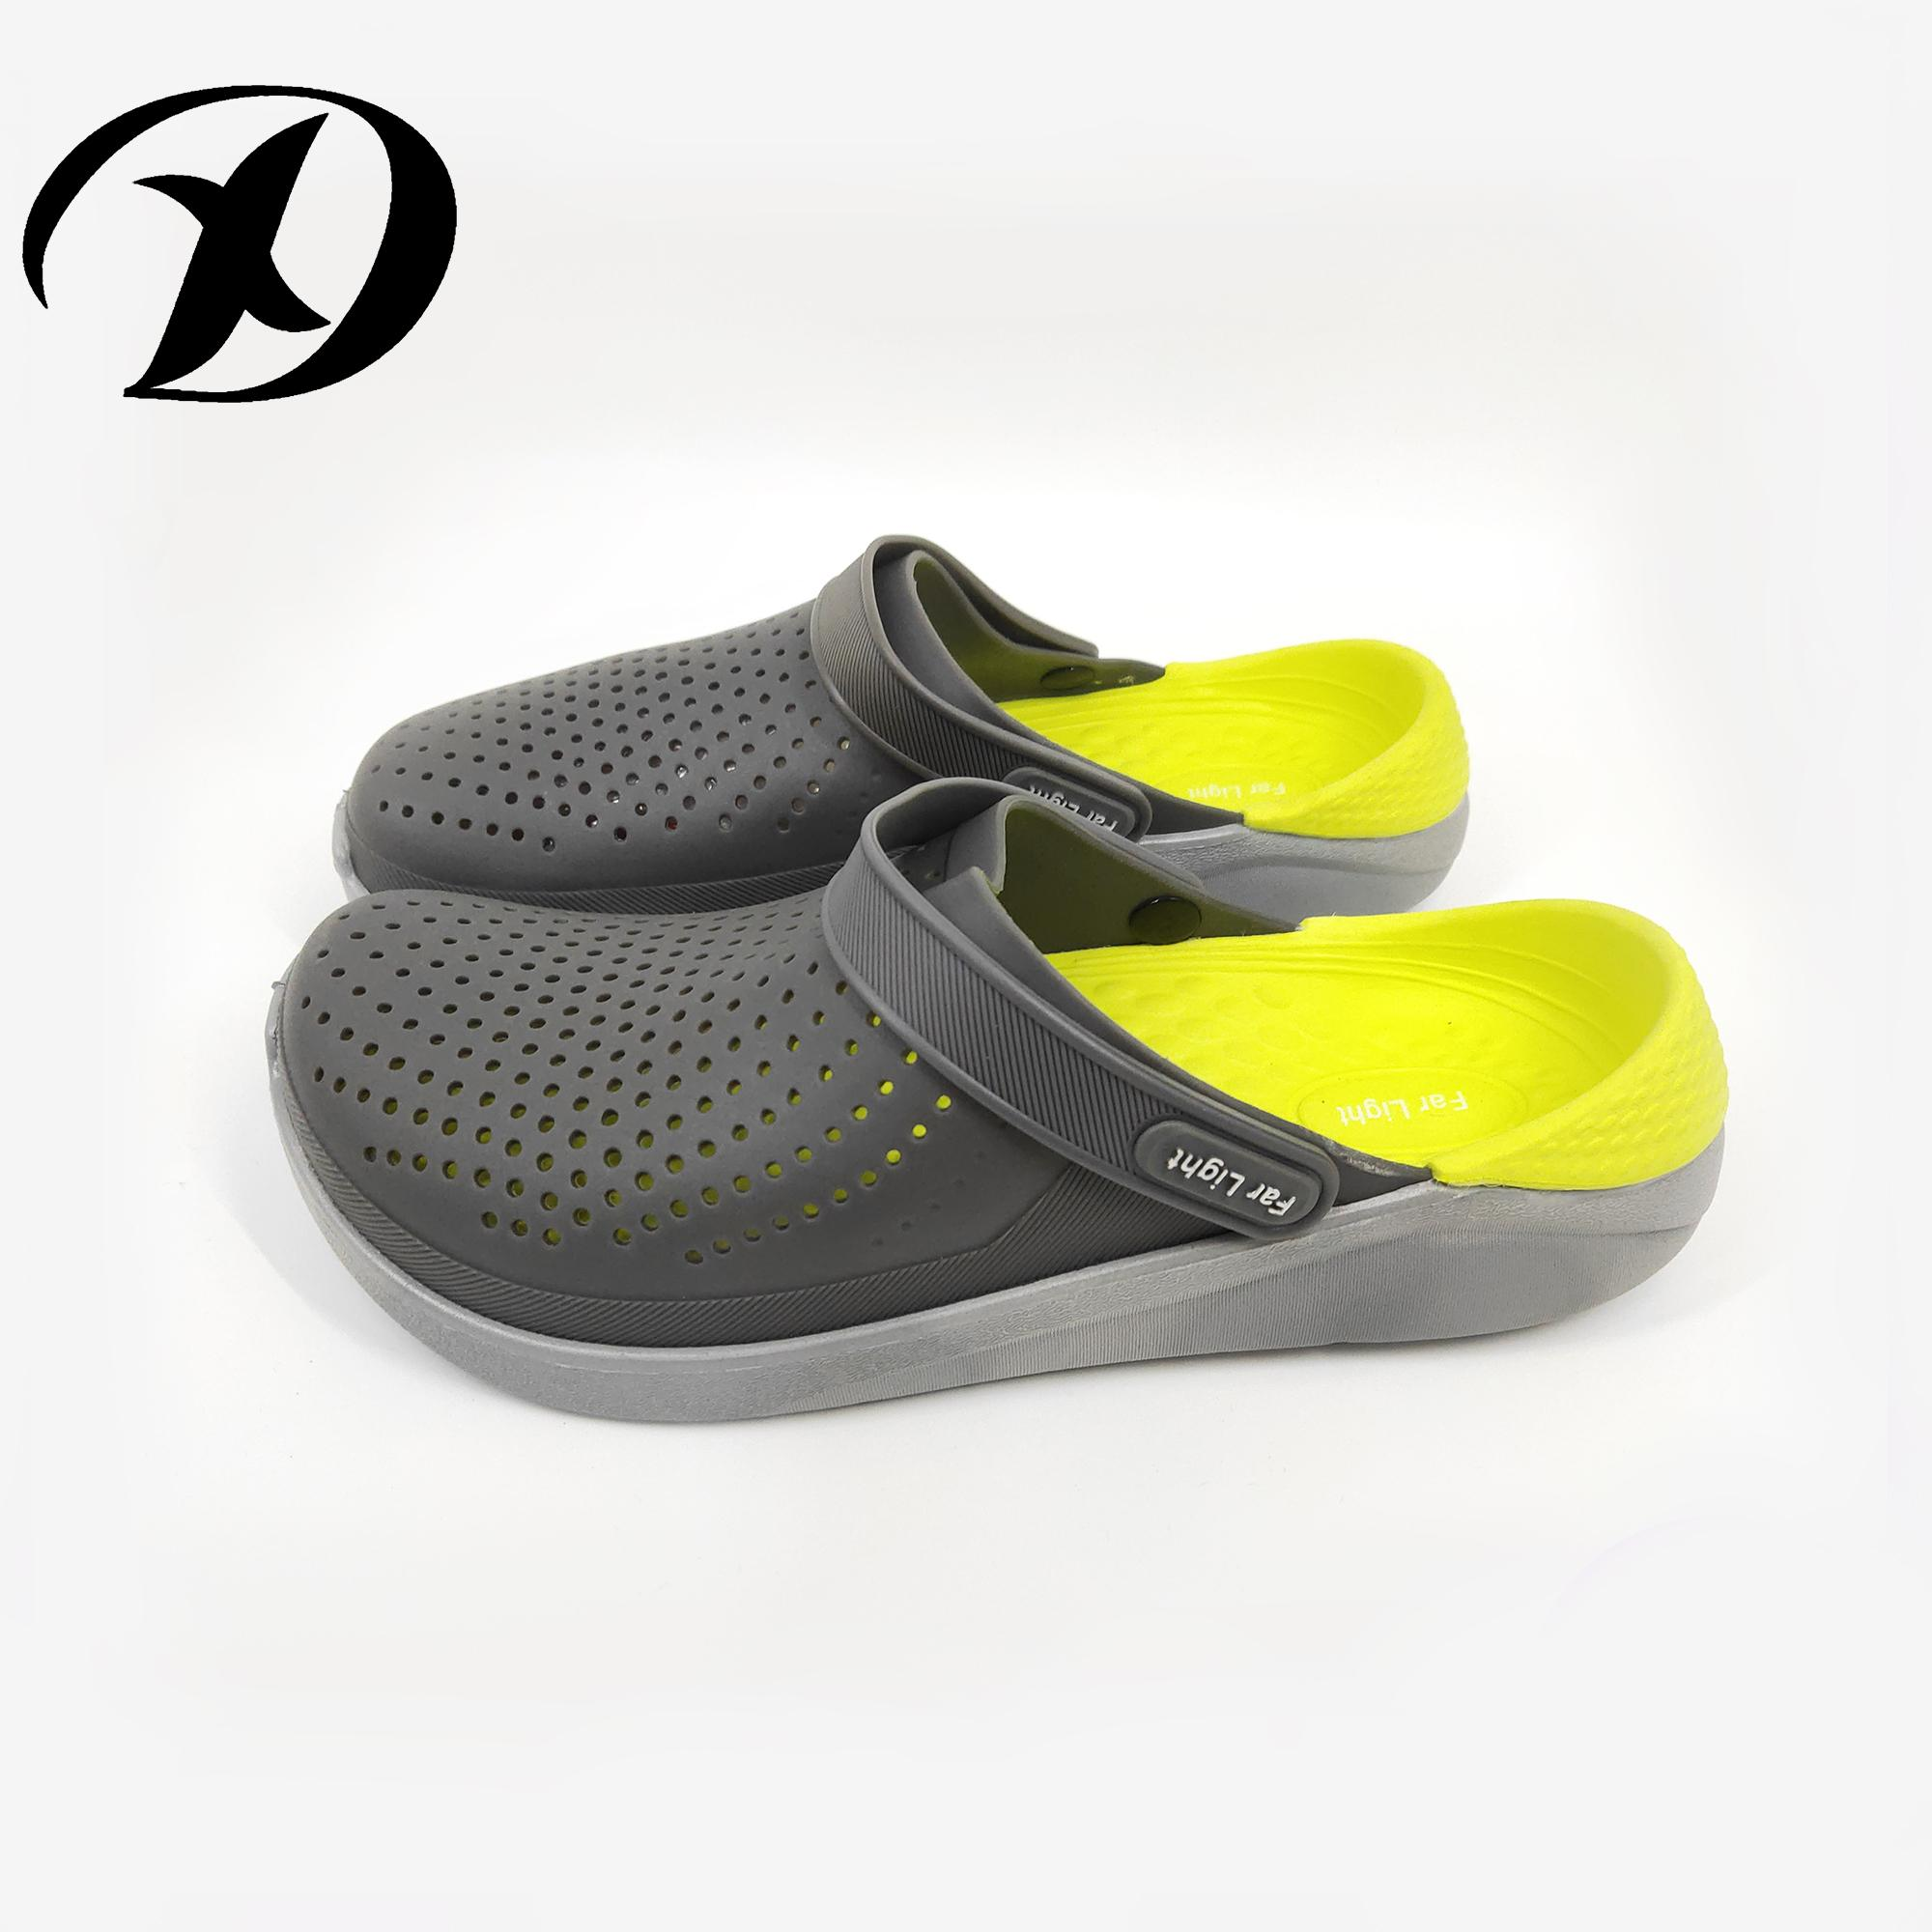 Dx Summer Sandals Men Casual Shoes Mules Clogs Croc Breathable Beach  Slippers Male Water Hollow Jelly c15e4ba4b3